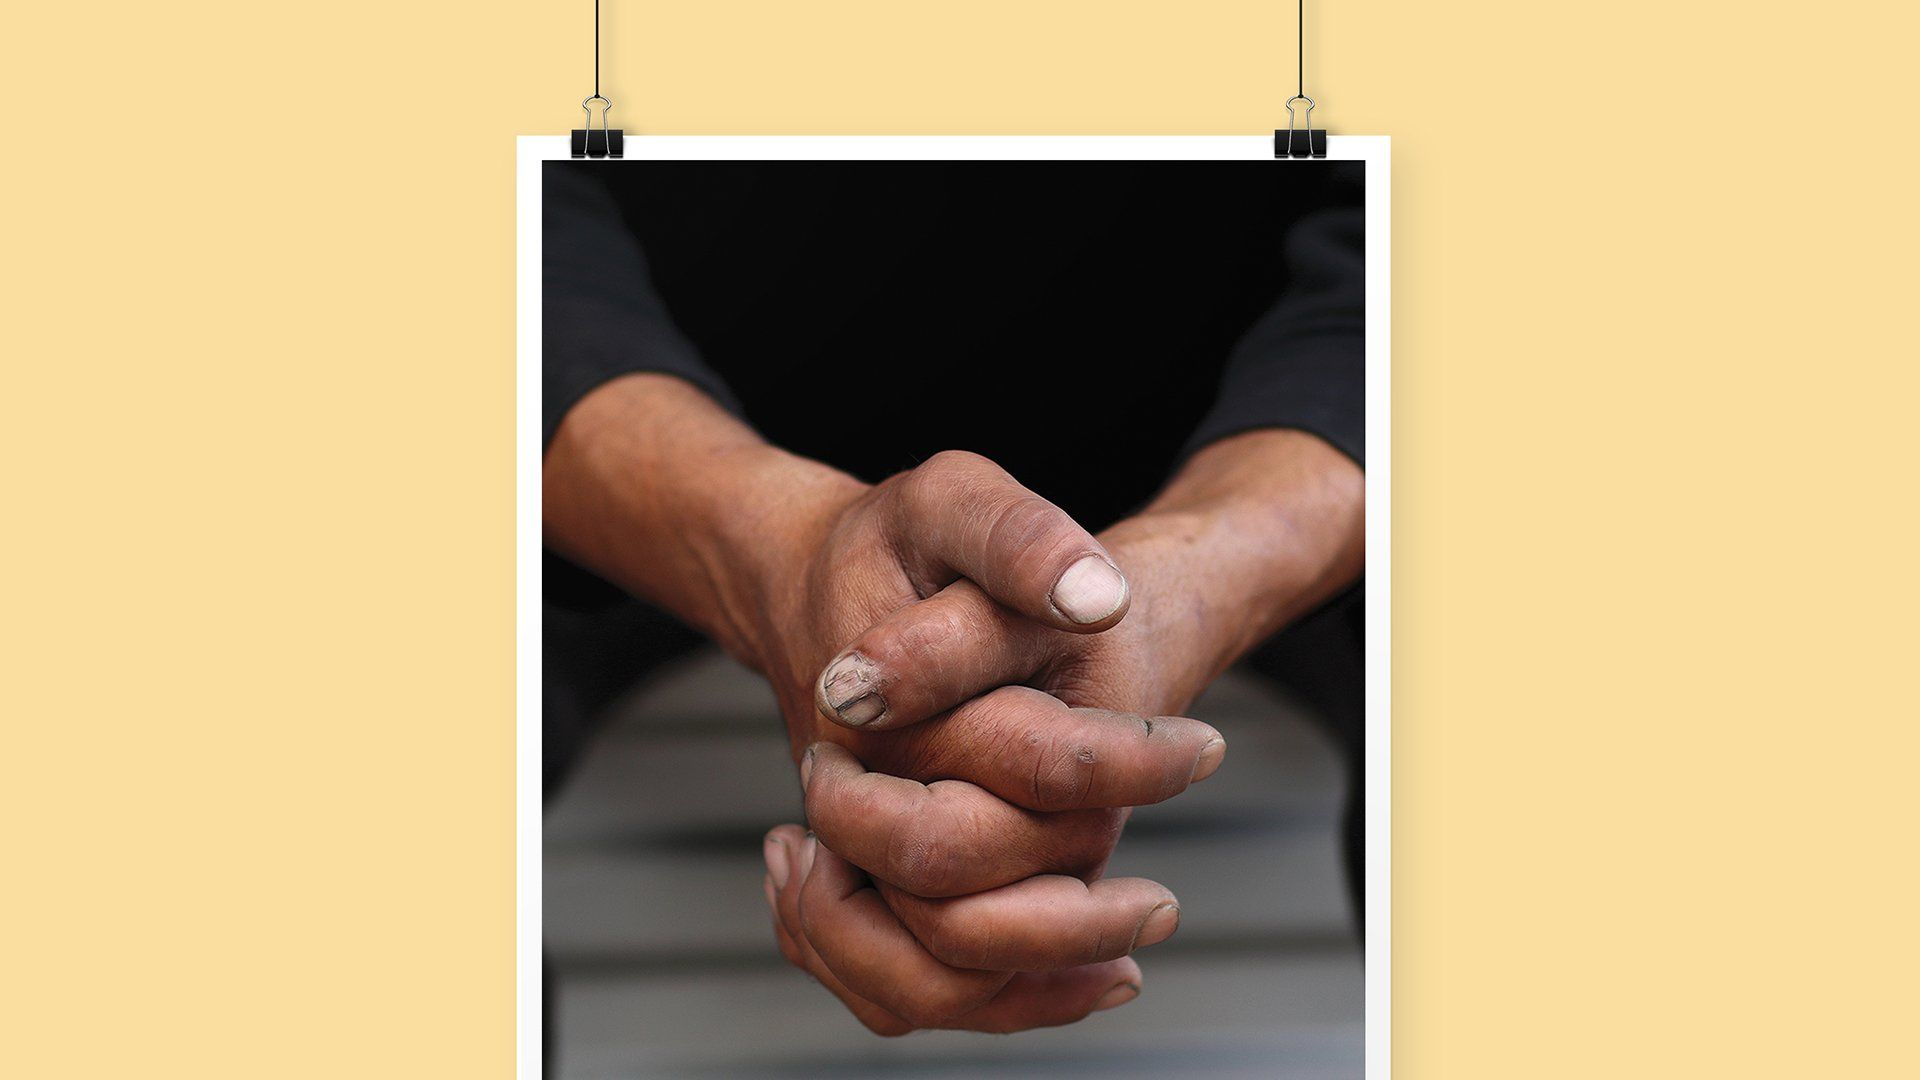 A beautiful print poster showing a profound image of a male with his hands interlocked.